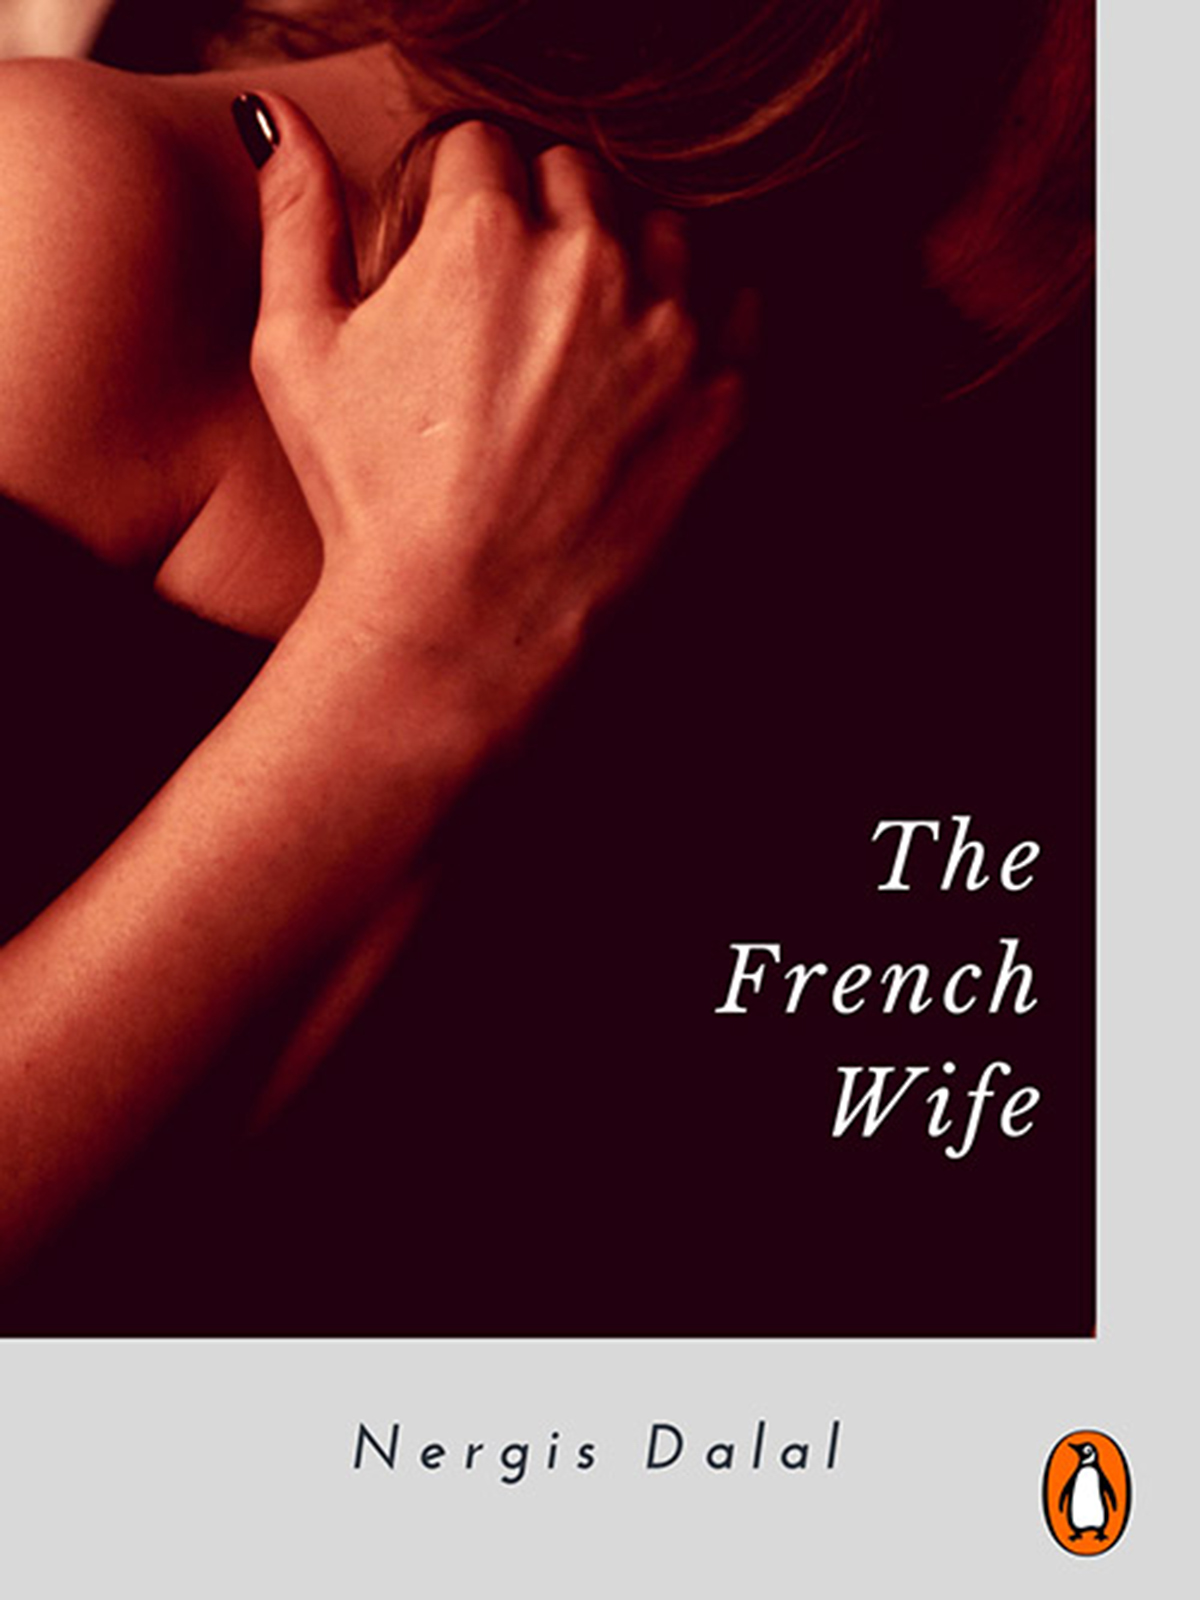 The French Wife